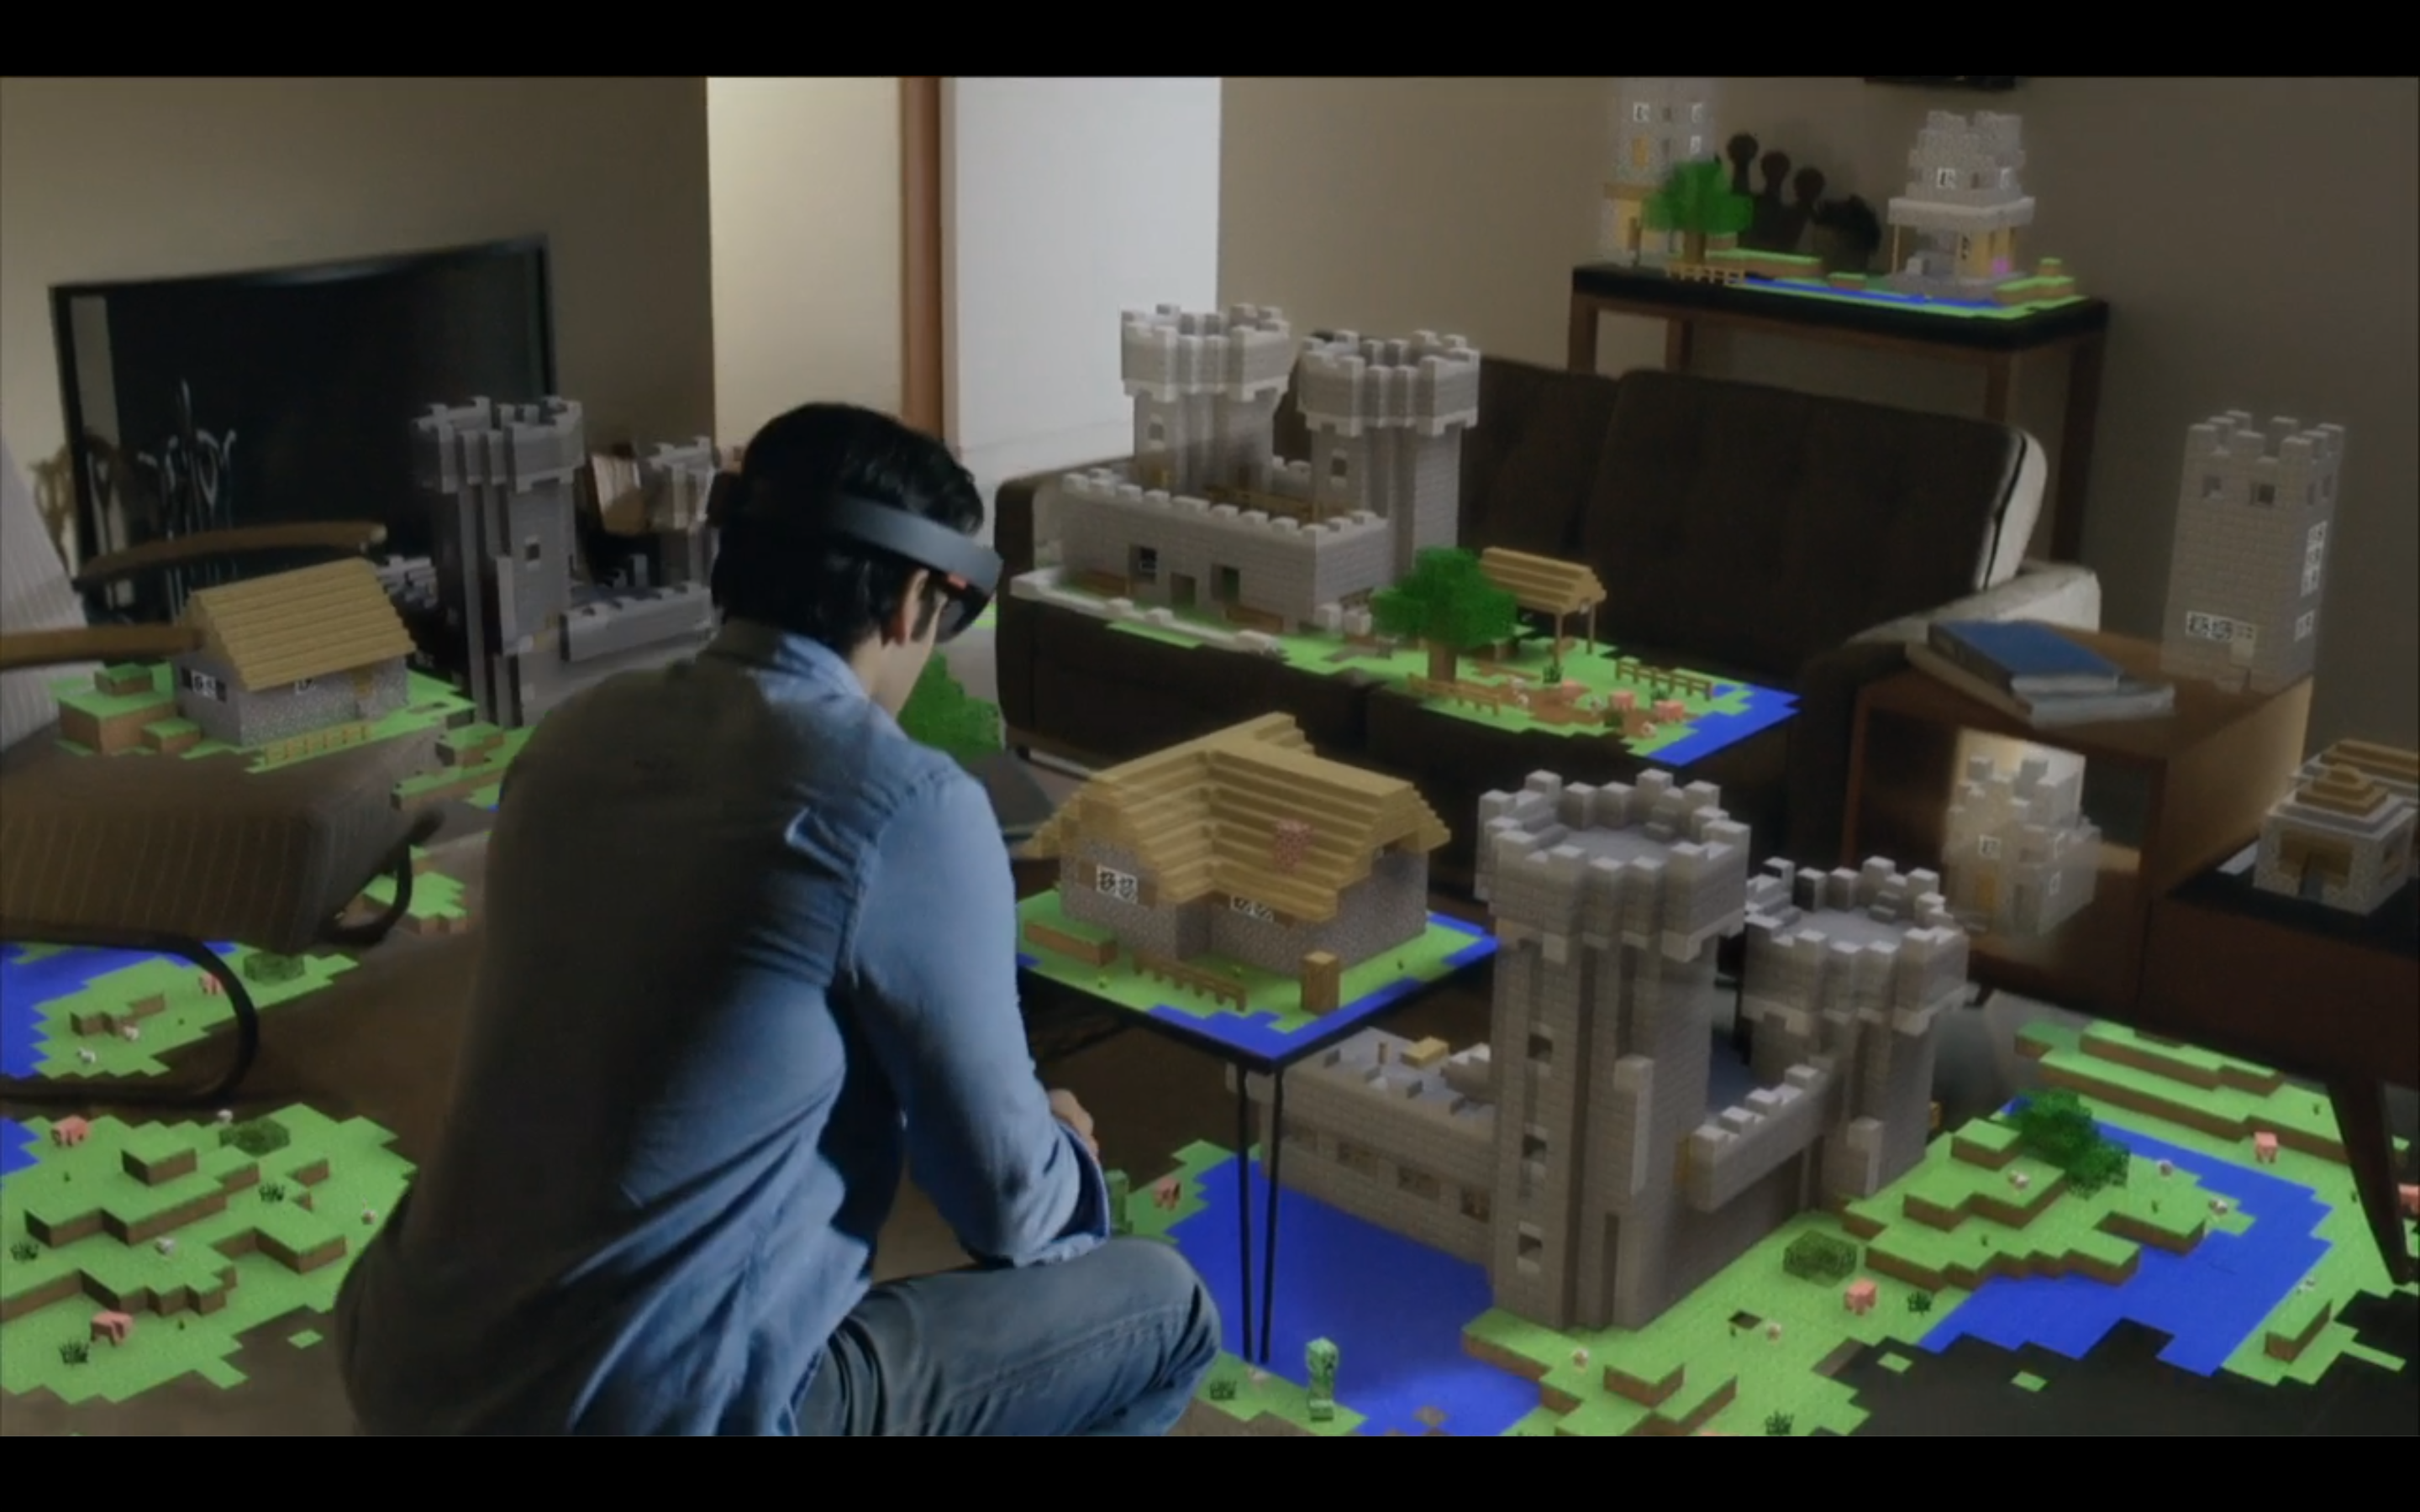 Microsoft's HoloLens is one untethered HMD that could benefit from Vulkan's battery saving potential.